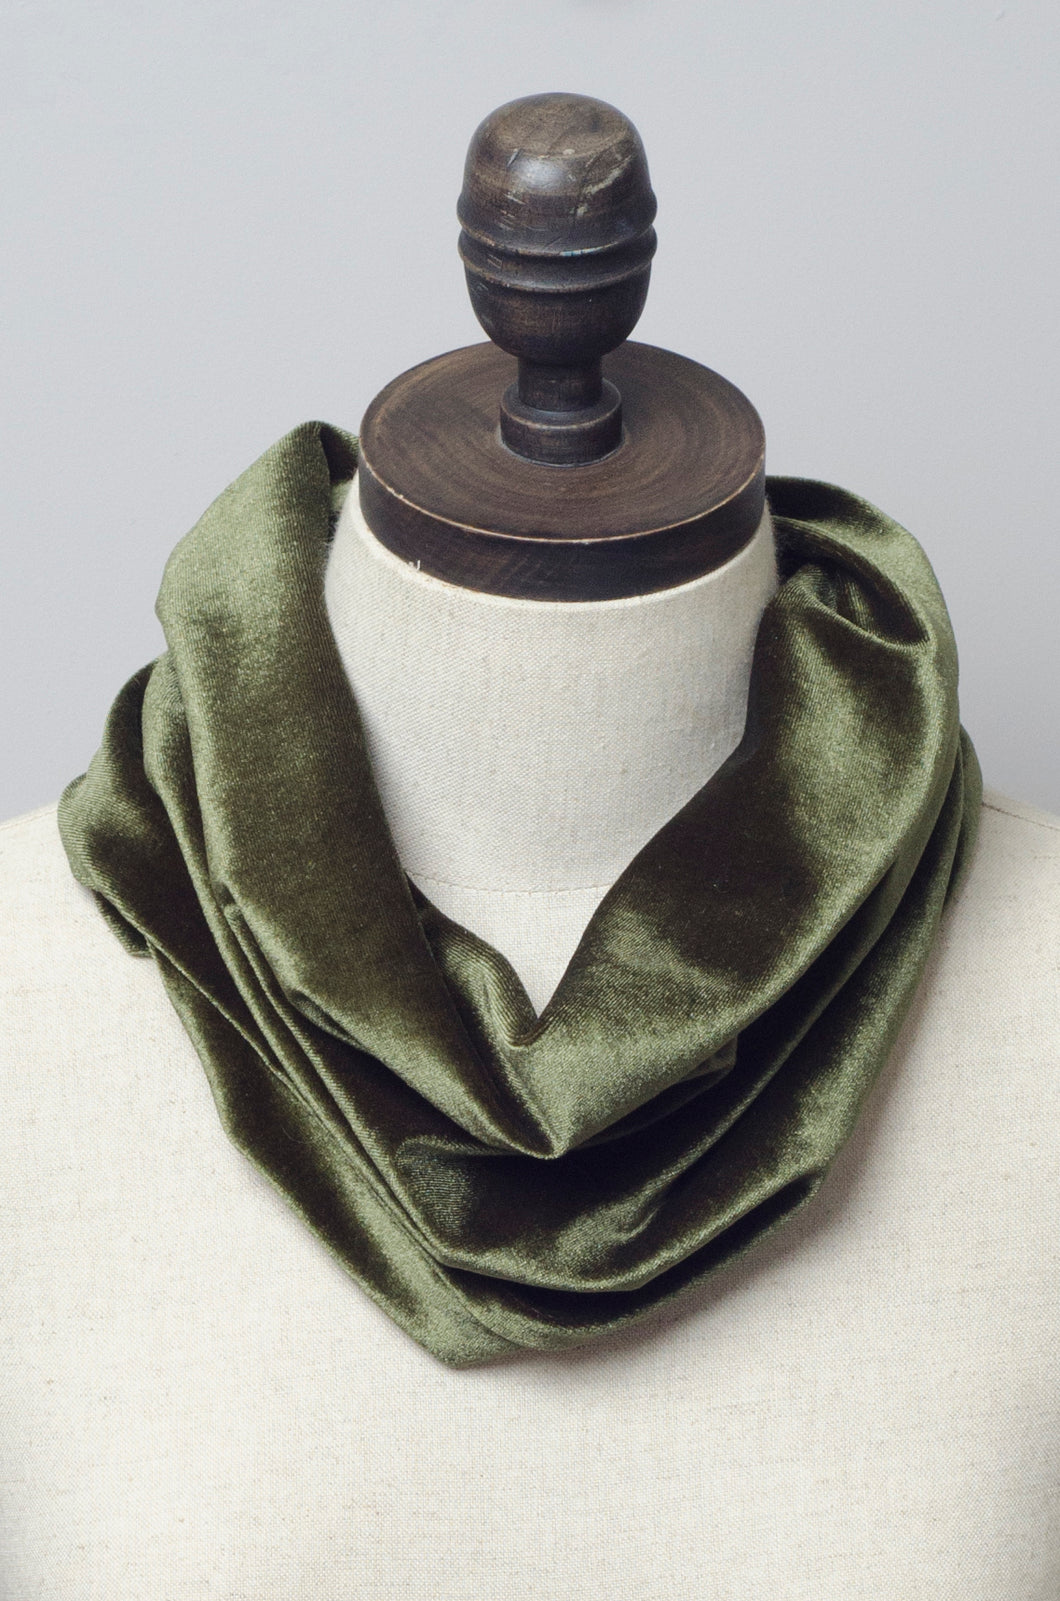 Velvet Cowl in Khaki - Accessories - Megan Crook